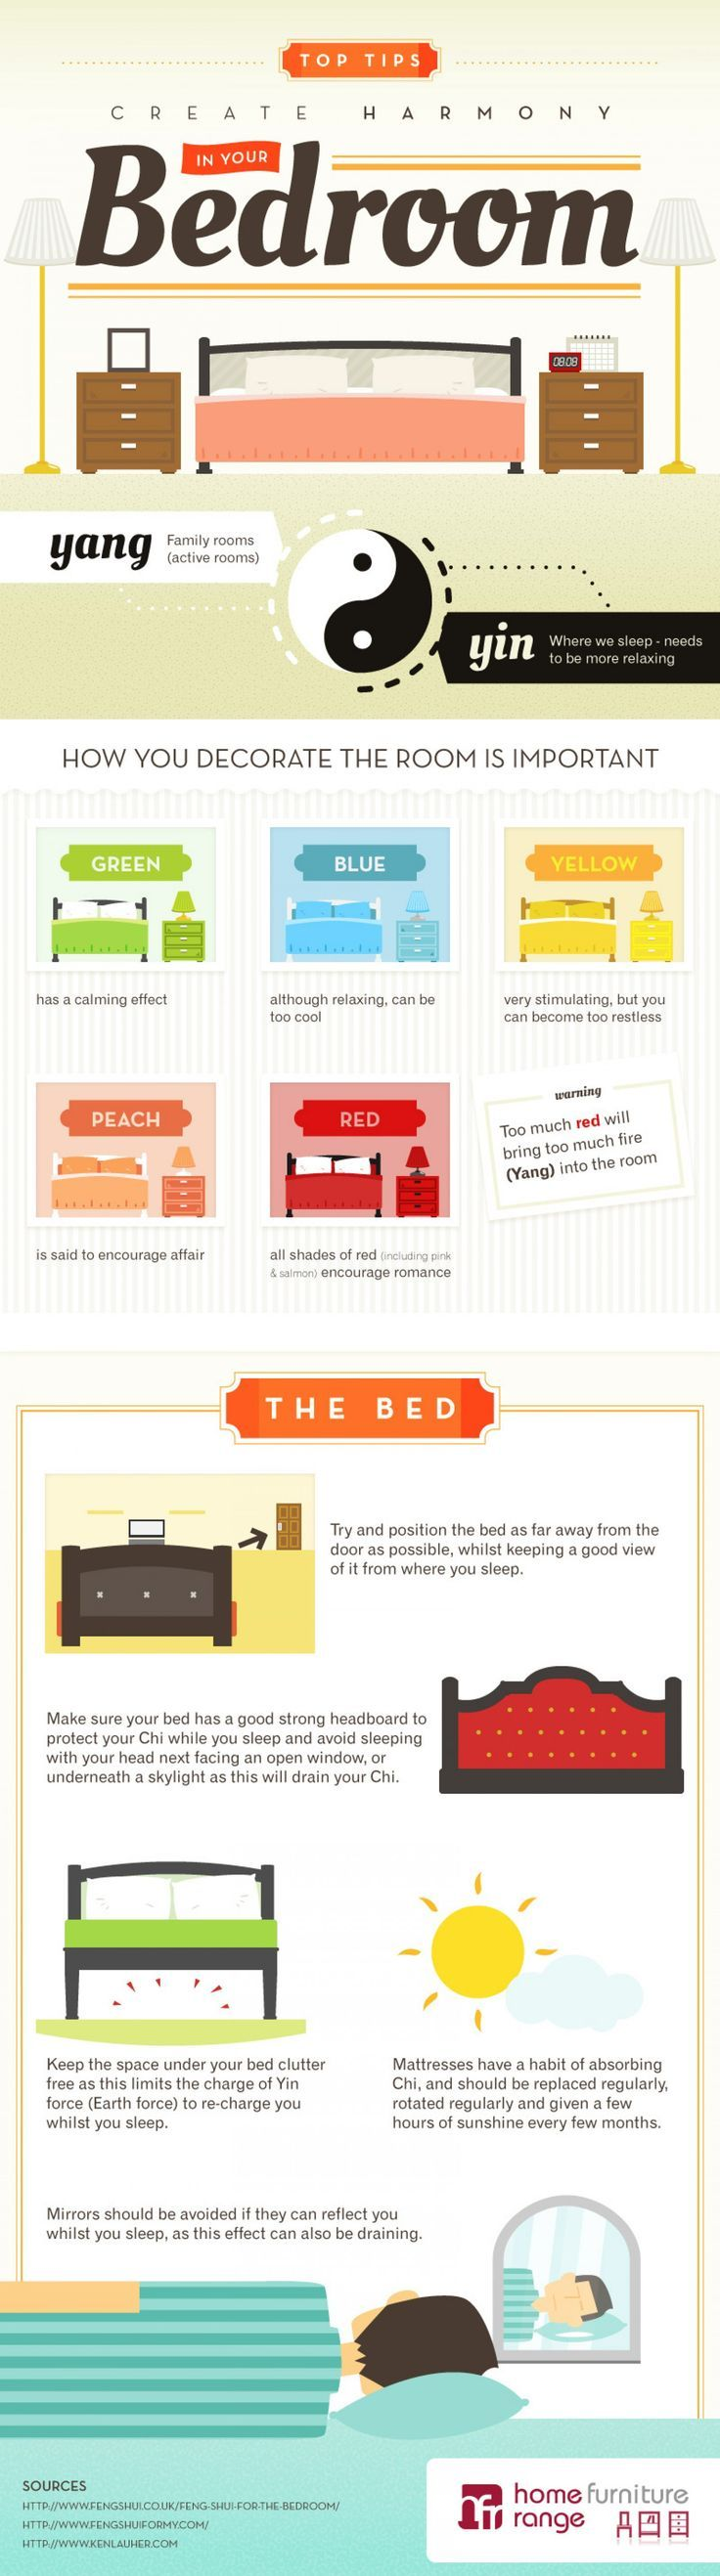 121 best images about Love Relationships and Feng Shui bedrooms